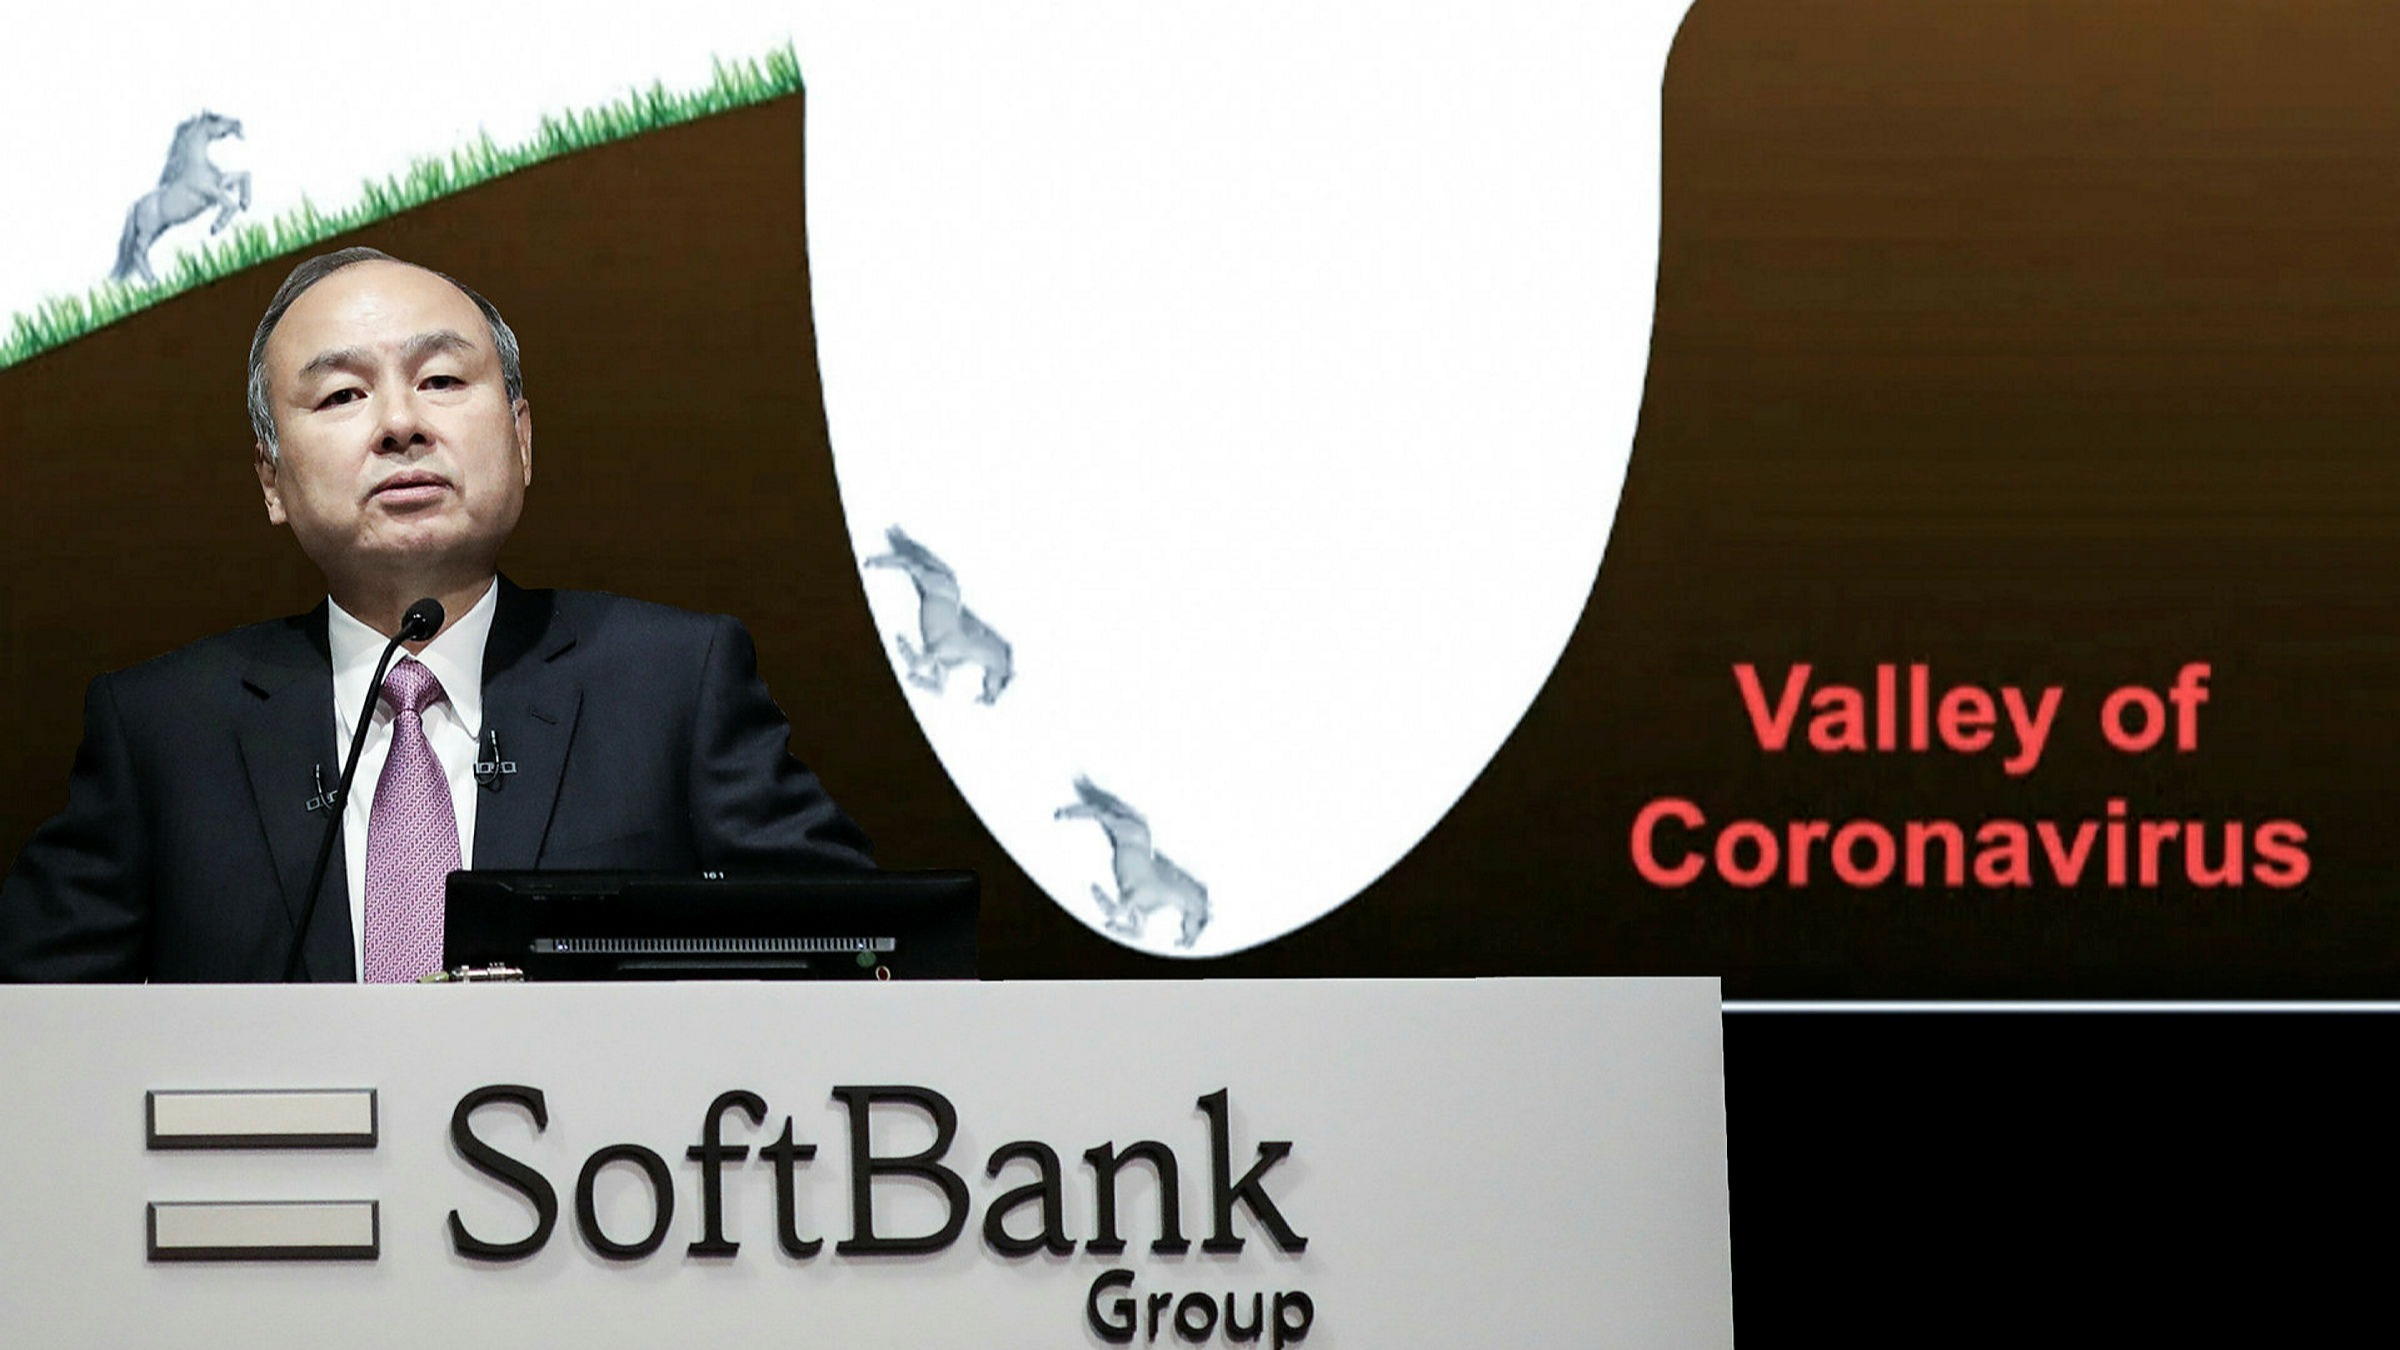 SoftBank and Masayoshi Son search for path out of 'coronavirus valley' |  Financial Times